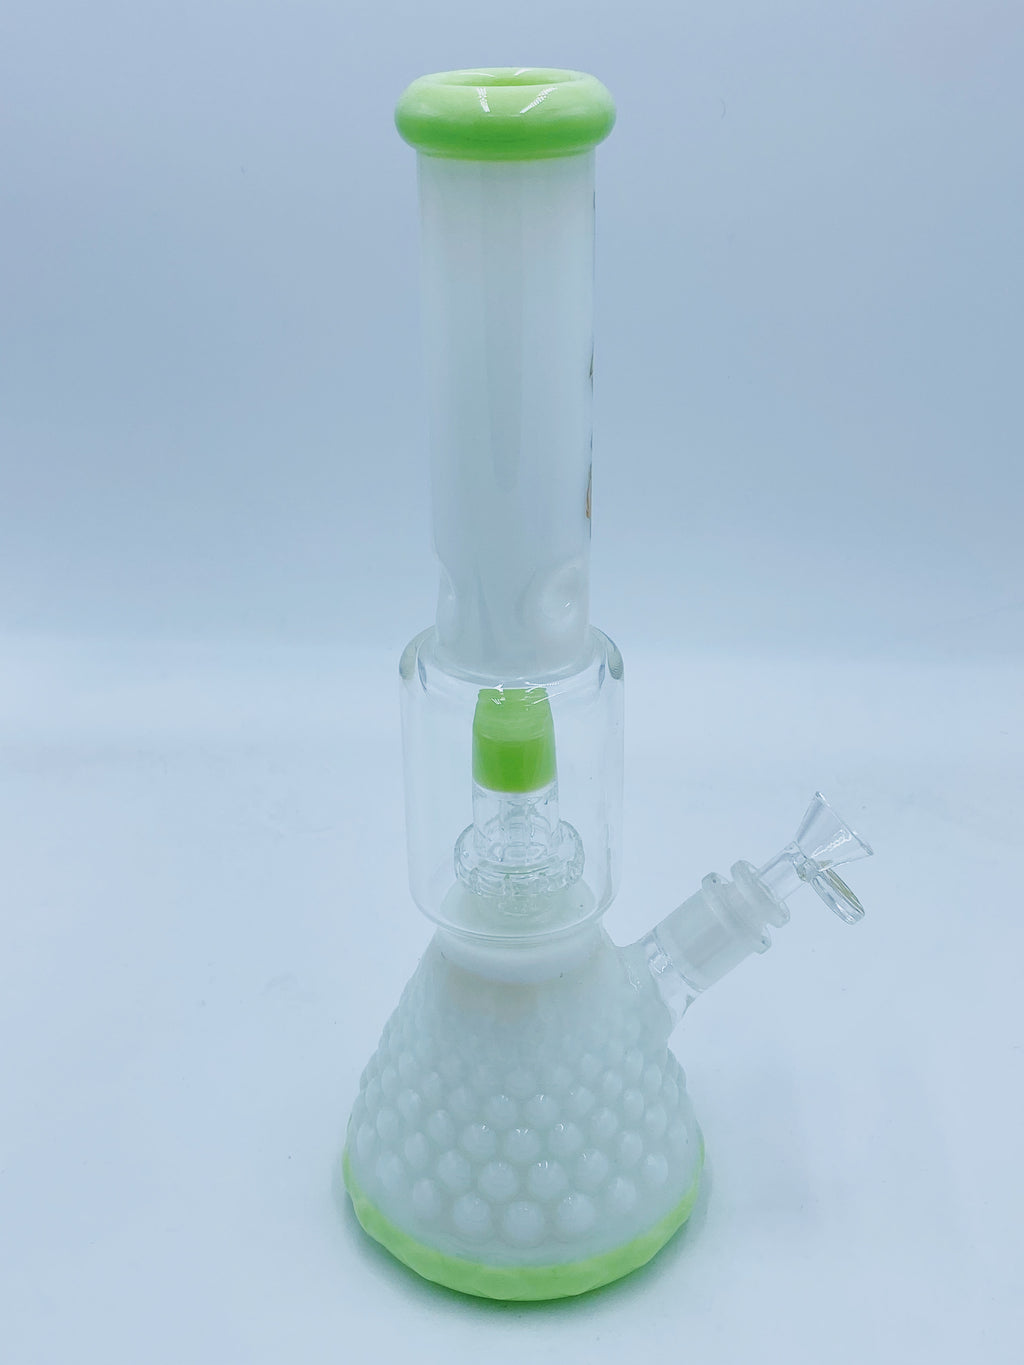 HAZE GLASS SHOWER HEAD PERCOLATOR - Smoke Country - Land of the artistic glass blown bongs